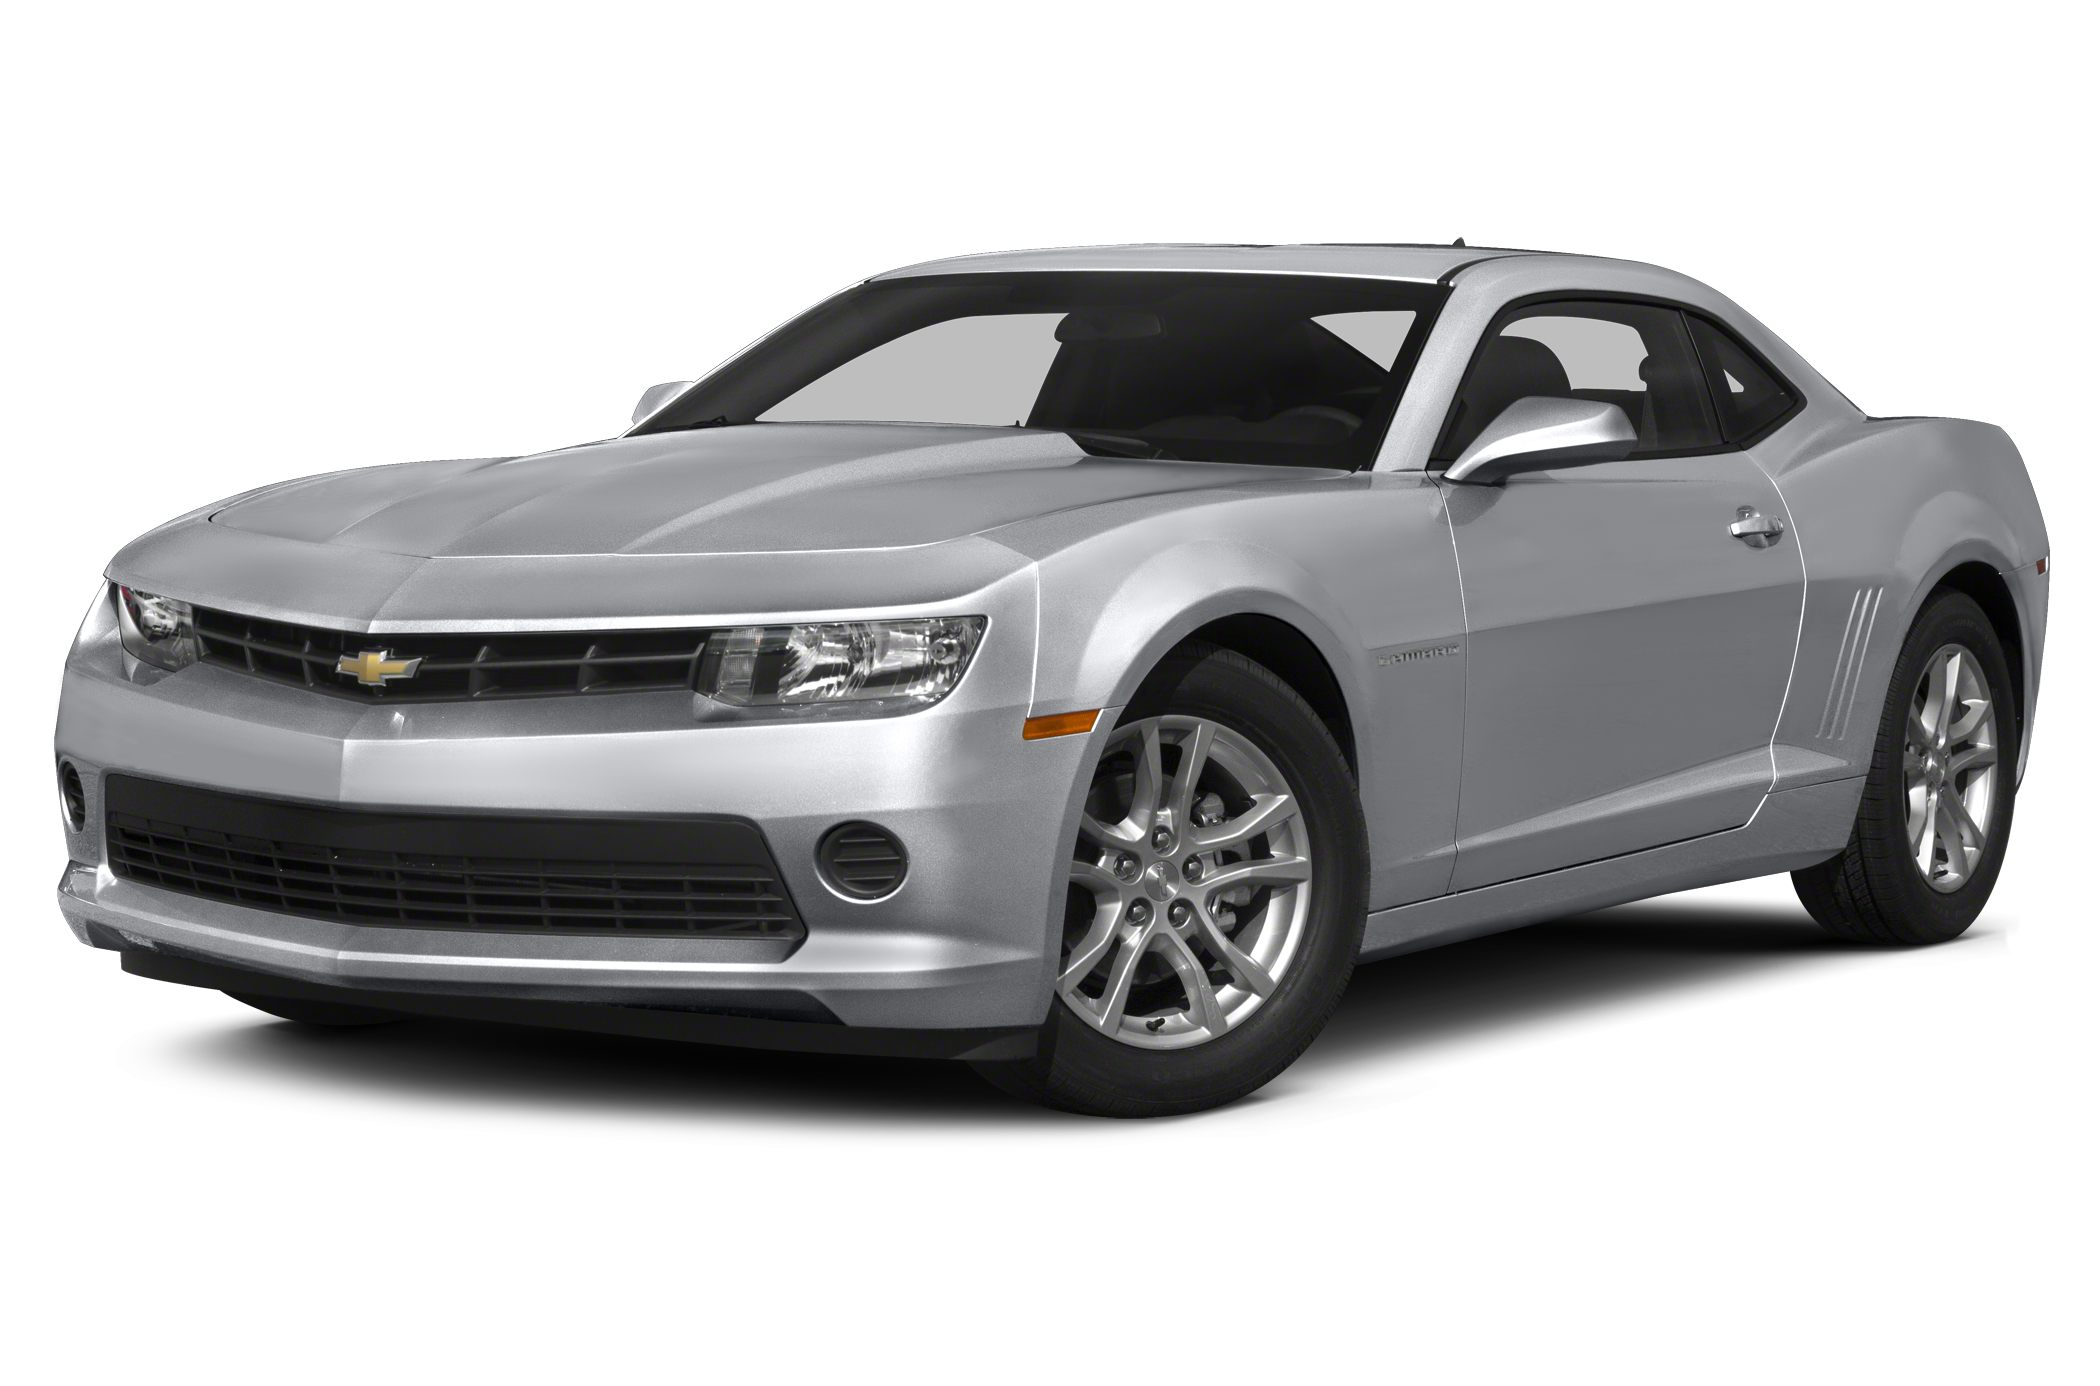 2015 Chevy Camaro Specs Release Date - Future Cars Models